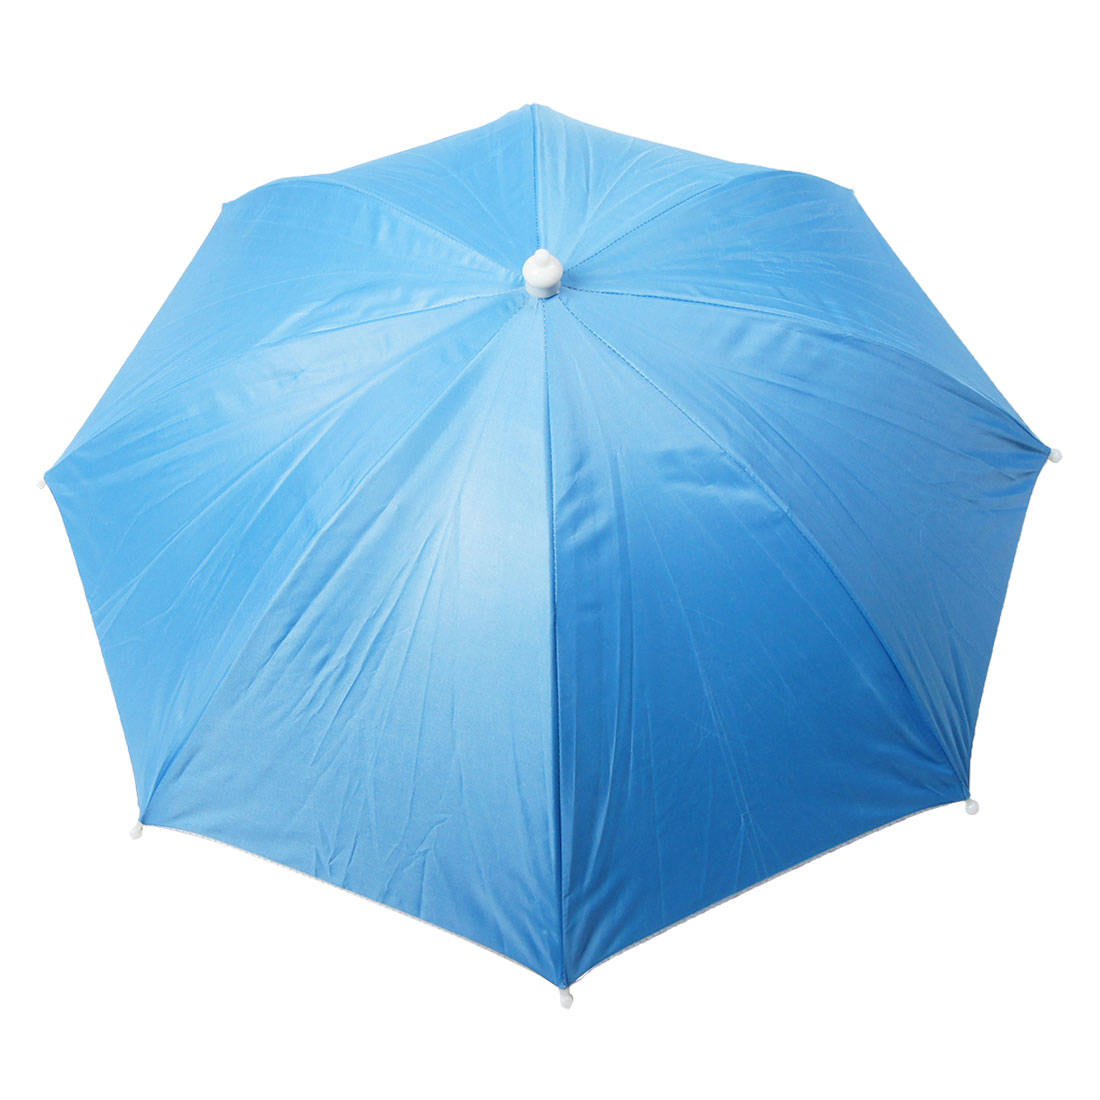 Portable Light Blue Outdoor Sports Fishing Umbrella Hat